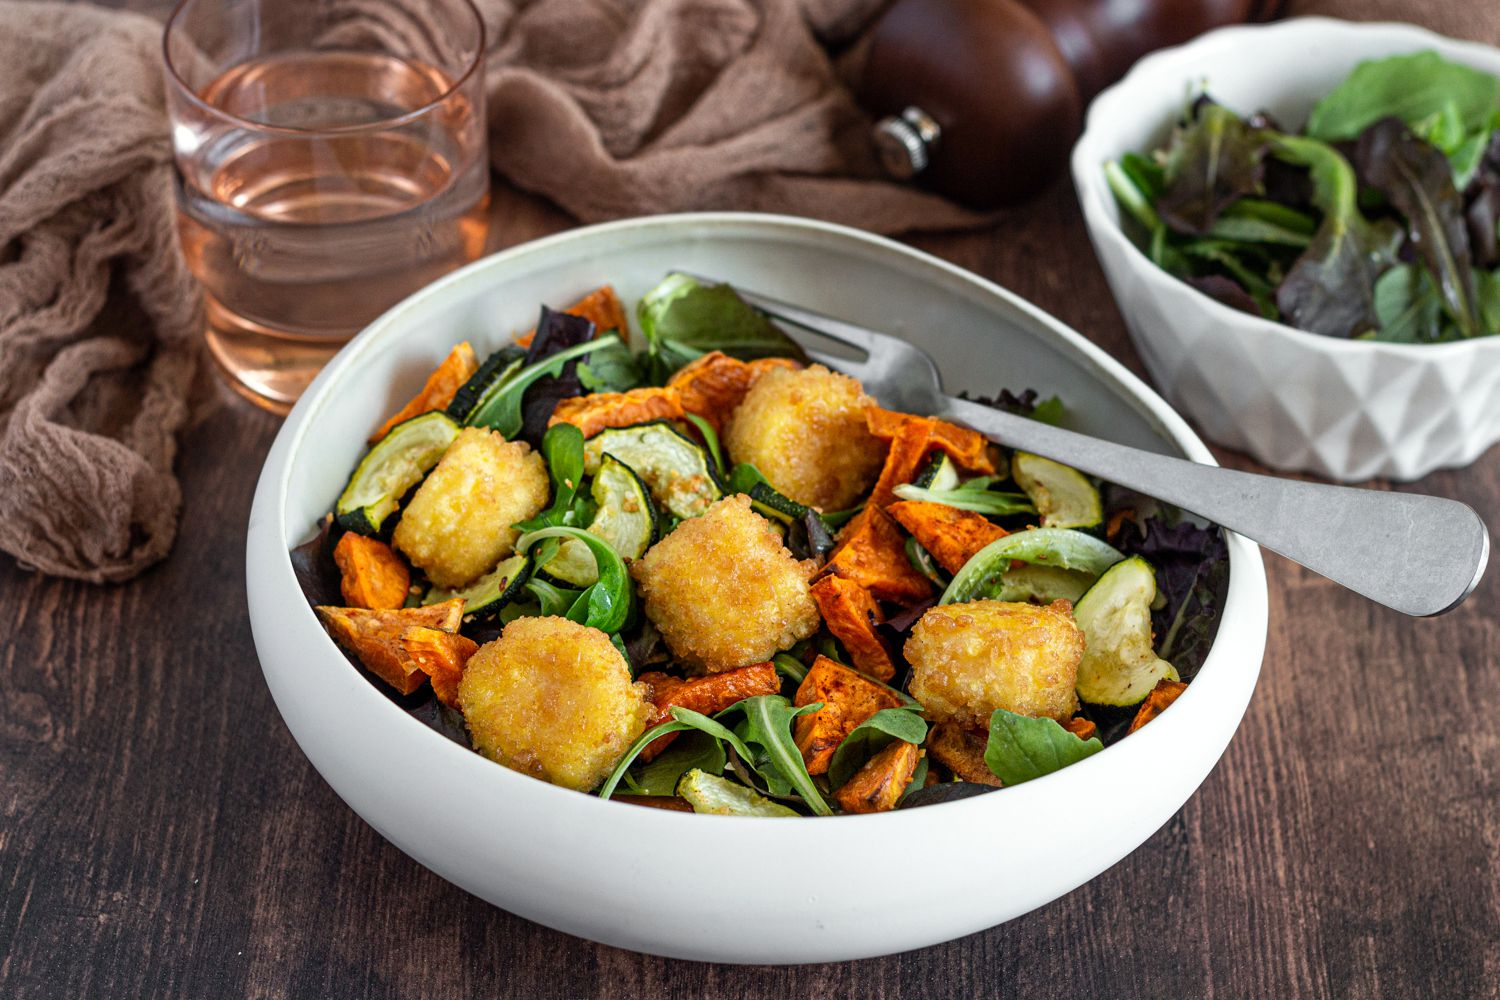 salade chèvre patate douce courgette